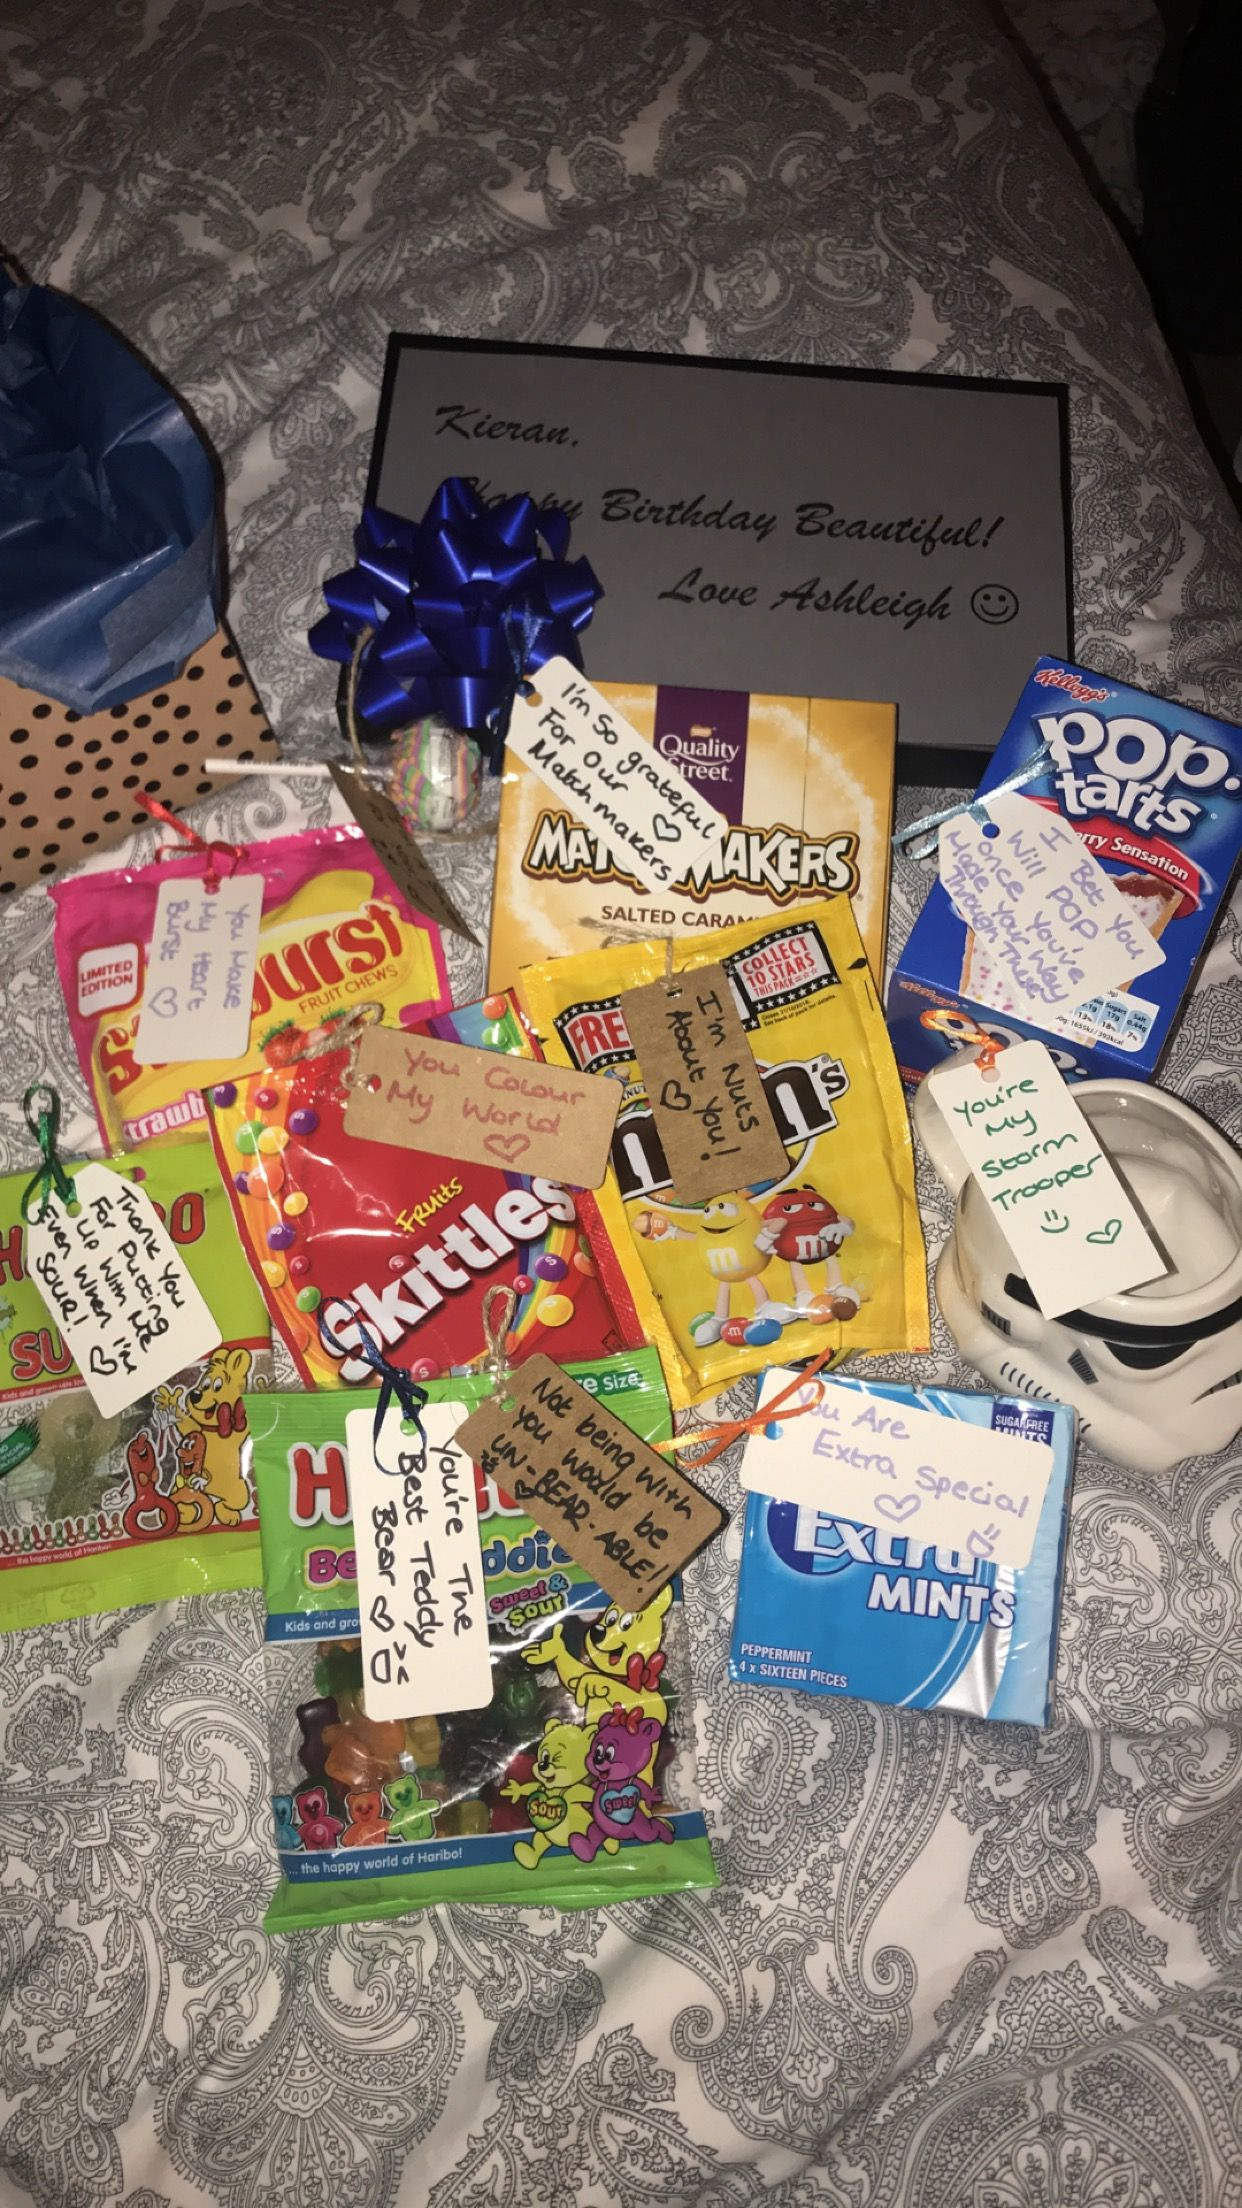 Present For My Boyfriend Christmas Presents For Boyfriend Diy Presents For Boyfriend Friend Birthday Gifts